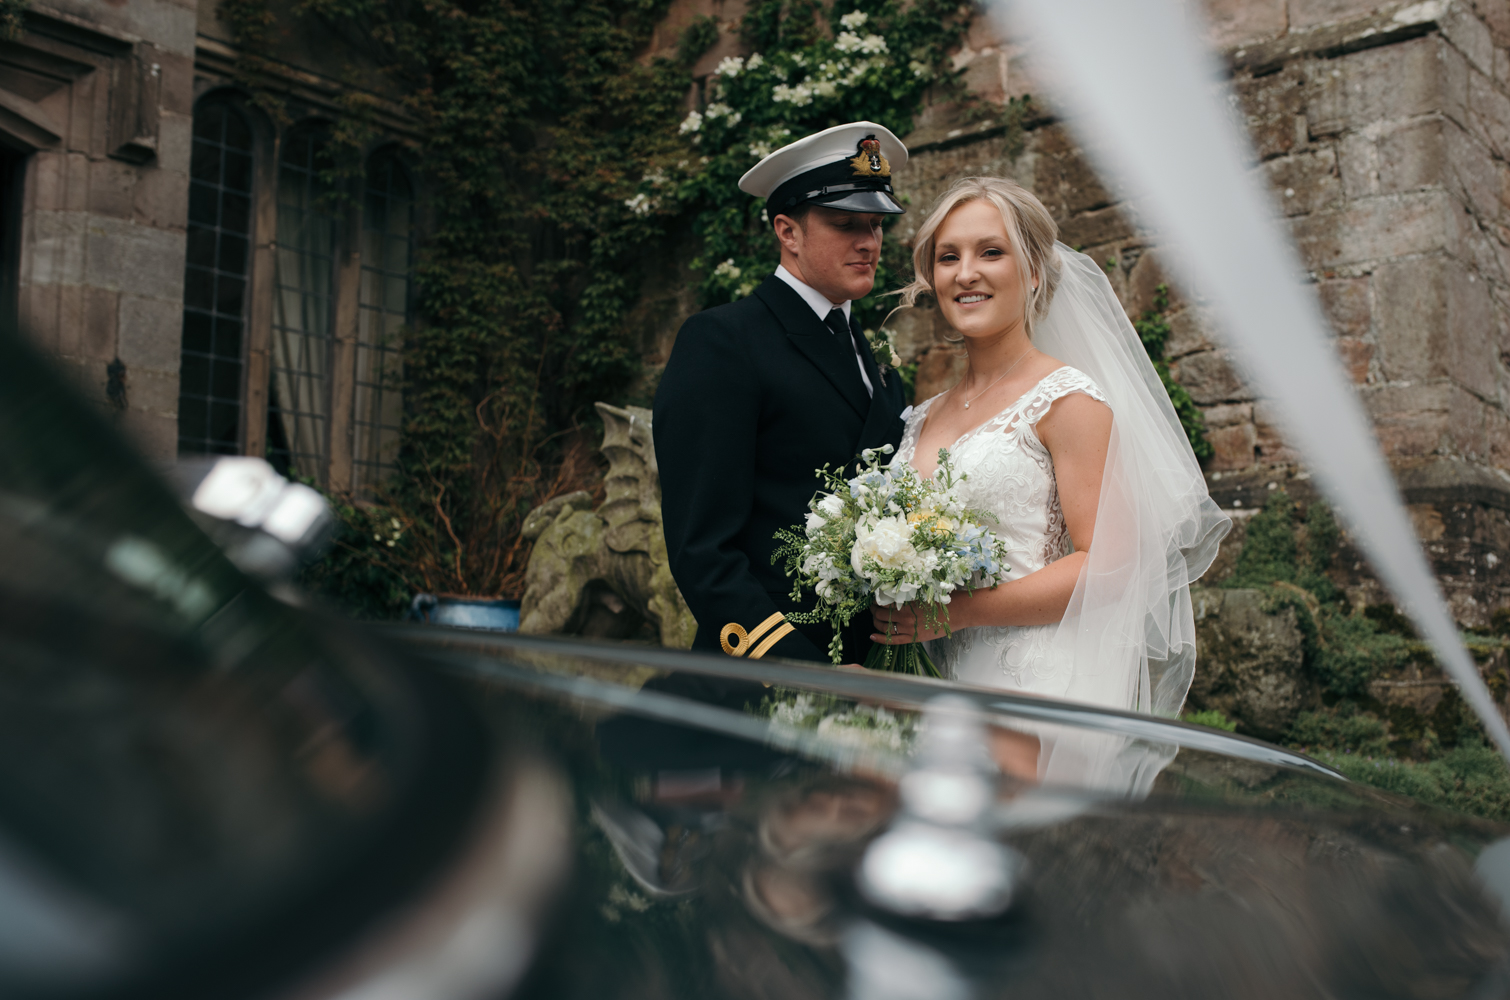 The bride and groom reflected in the bonnet of the aston martin car